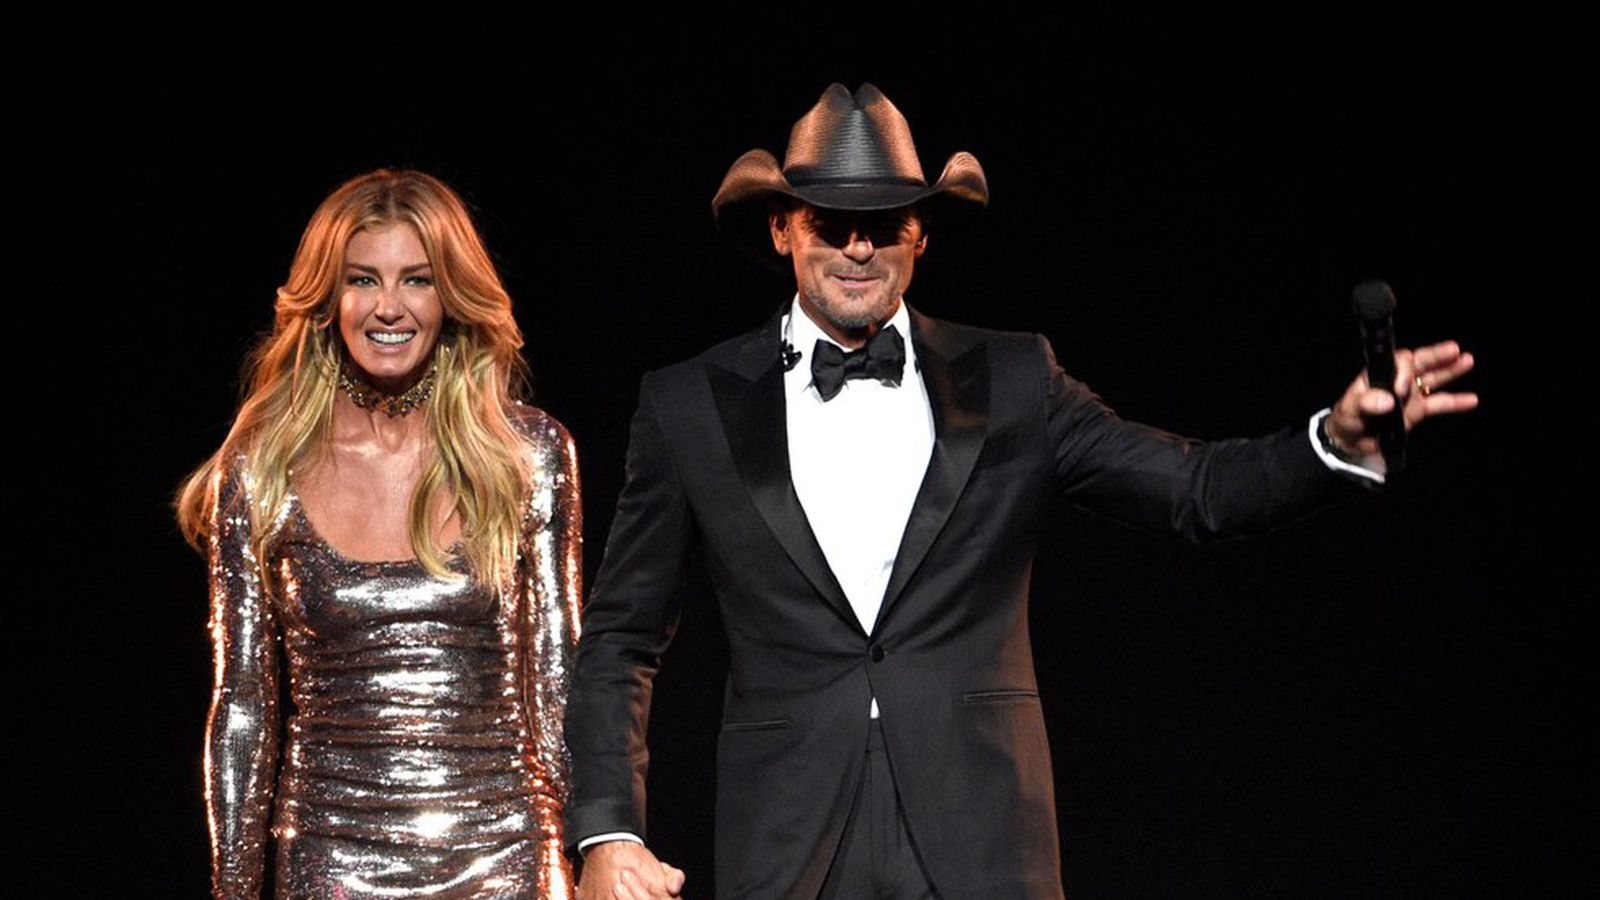 762f3394b9969 Tim McGraw and Faith Hill voice support for gun control - Axios